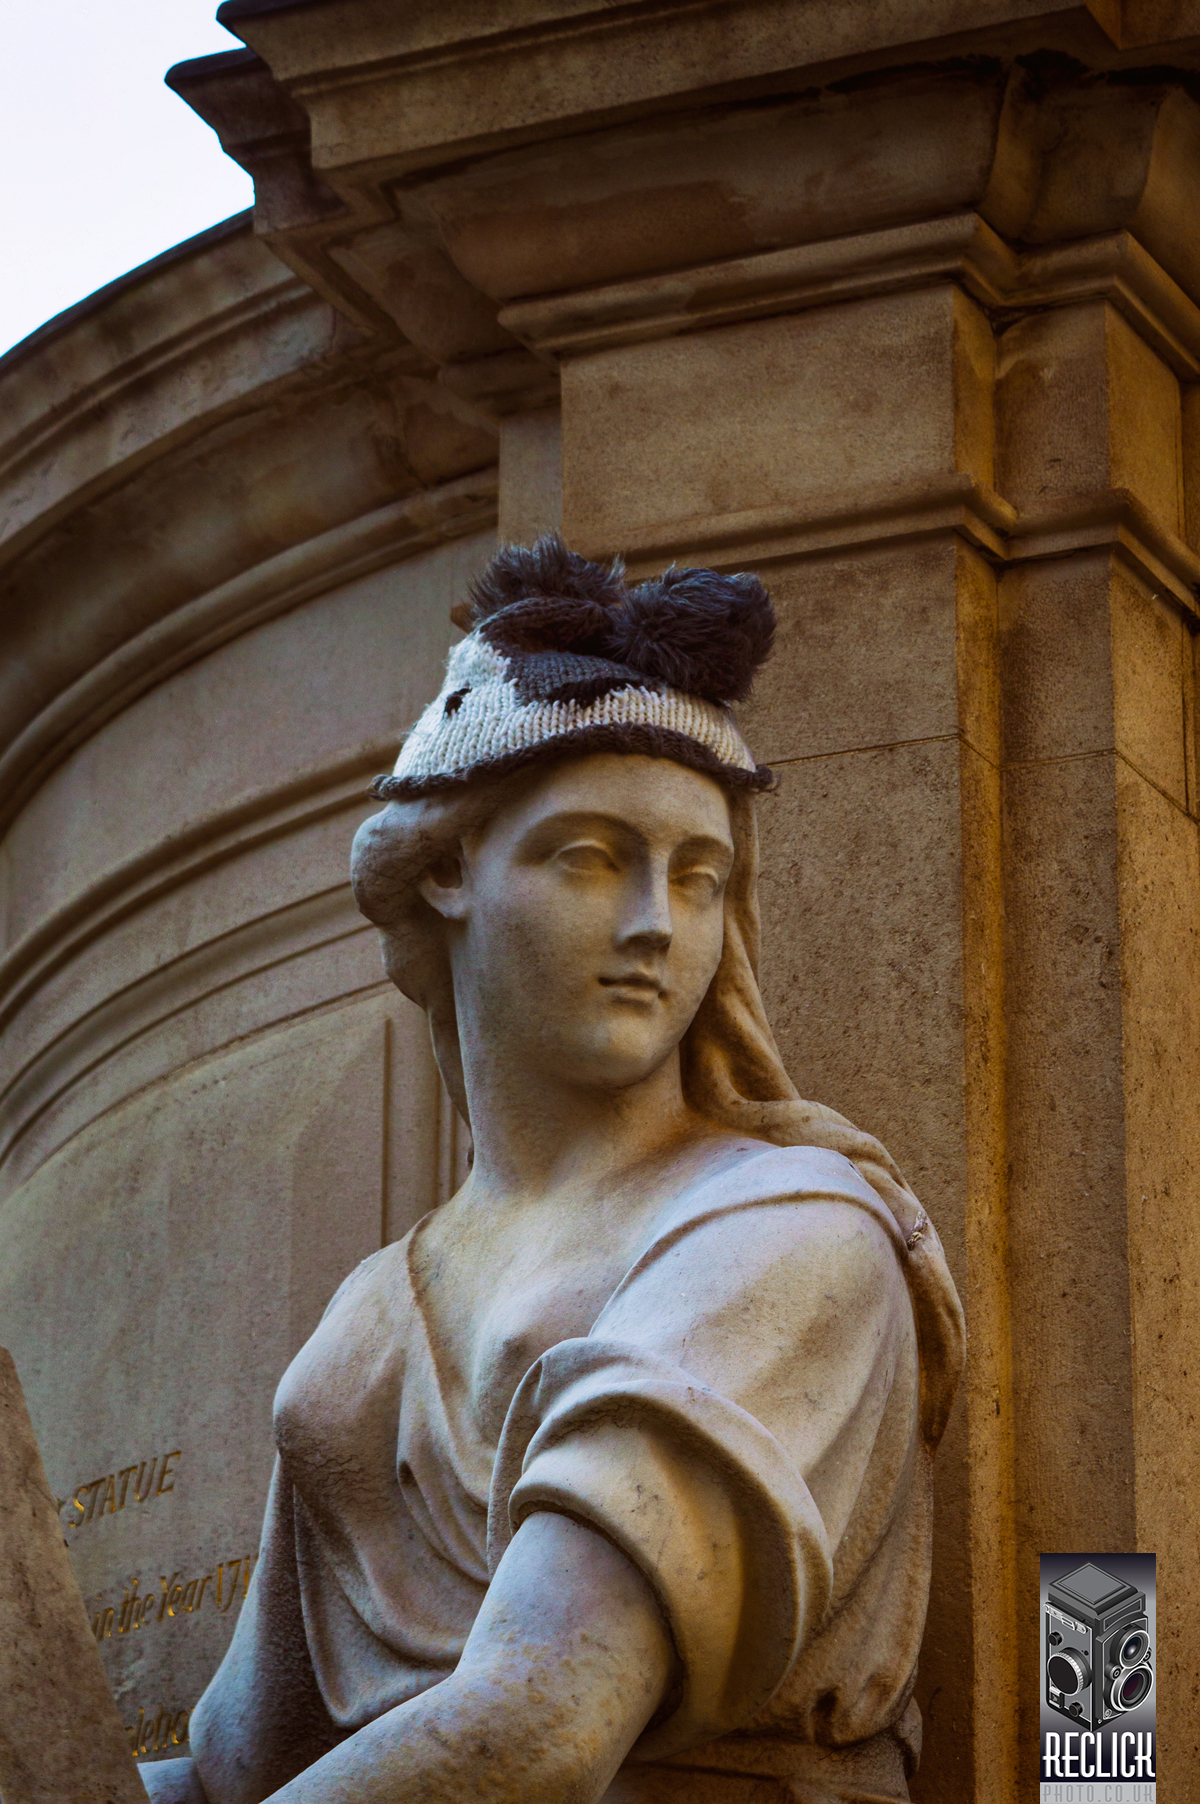 figure, marble, stone, hat, knitwear, knitting, classical art, public art, city of London, England, Great Britain, public space